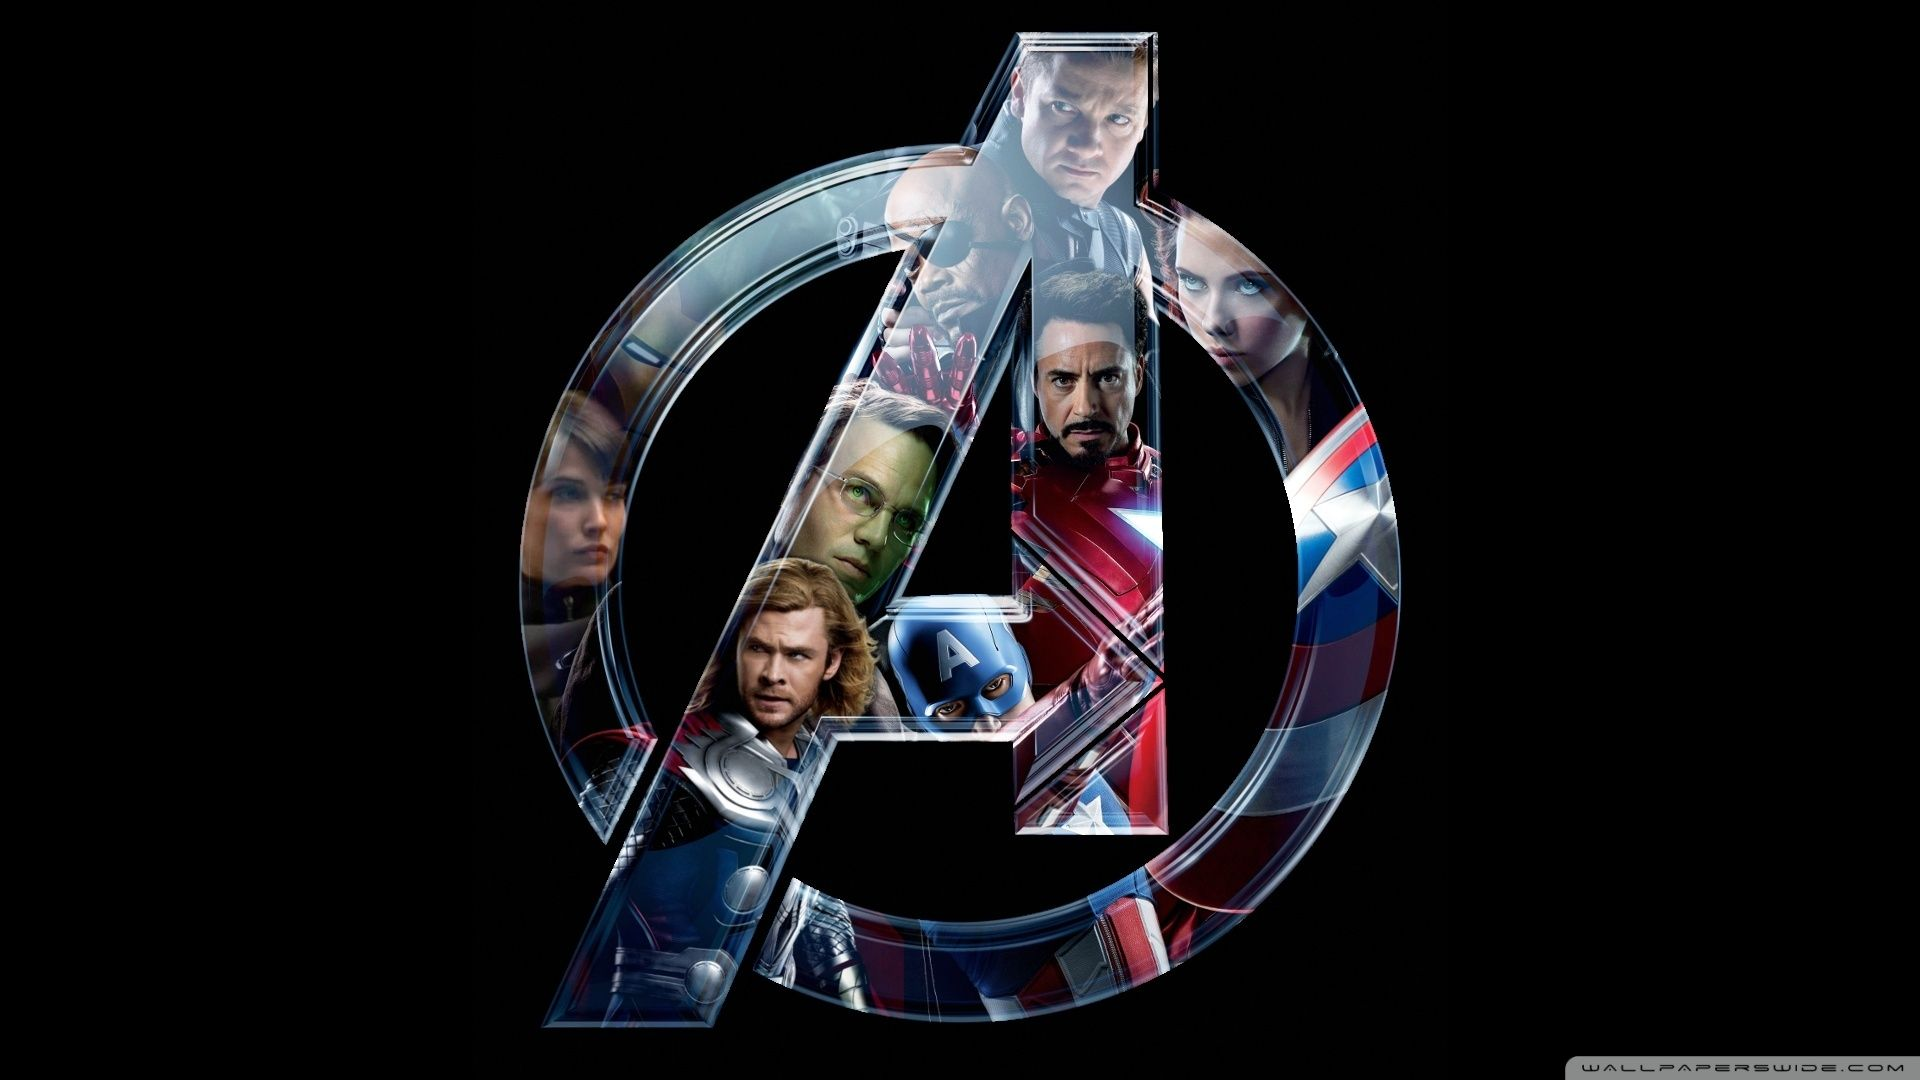 Avengers Wallpapers - Top Free Avengers Backgrounds